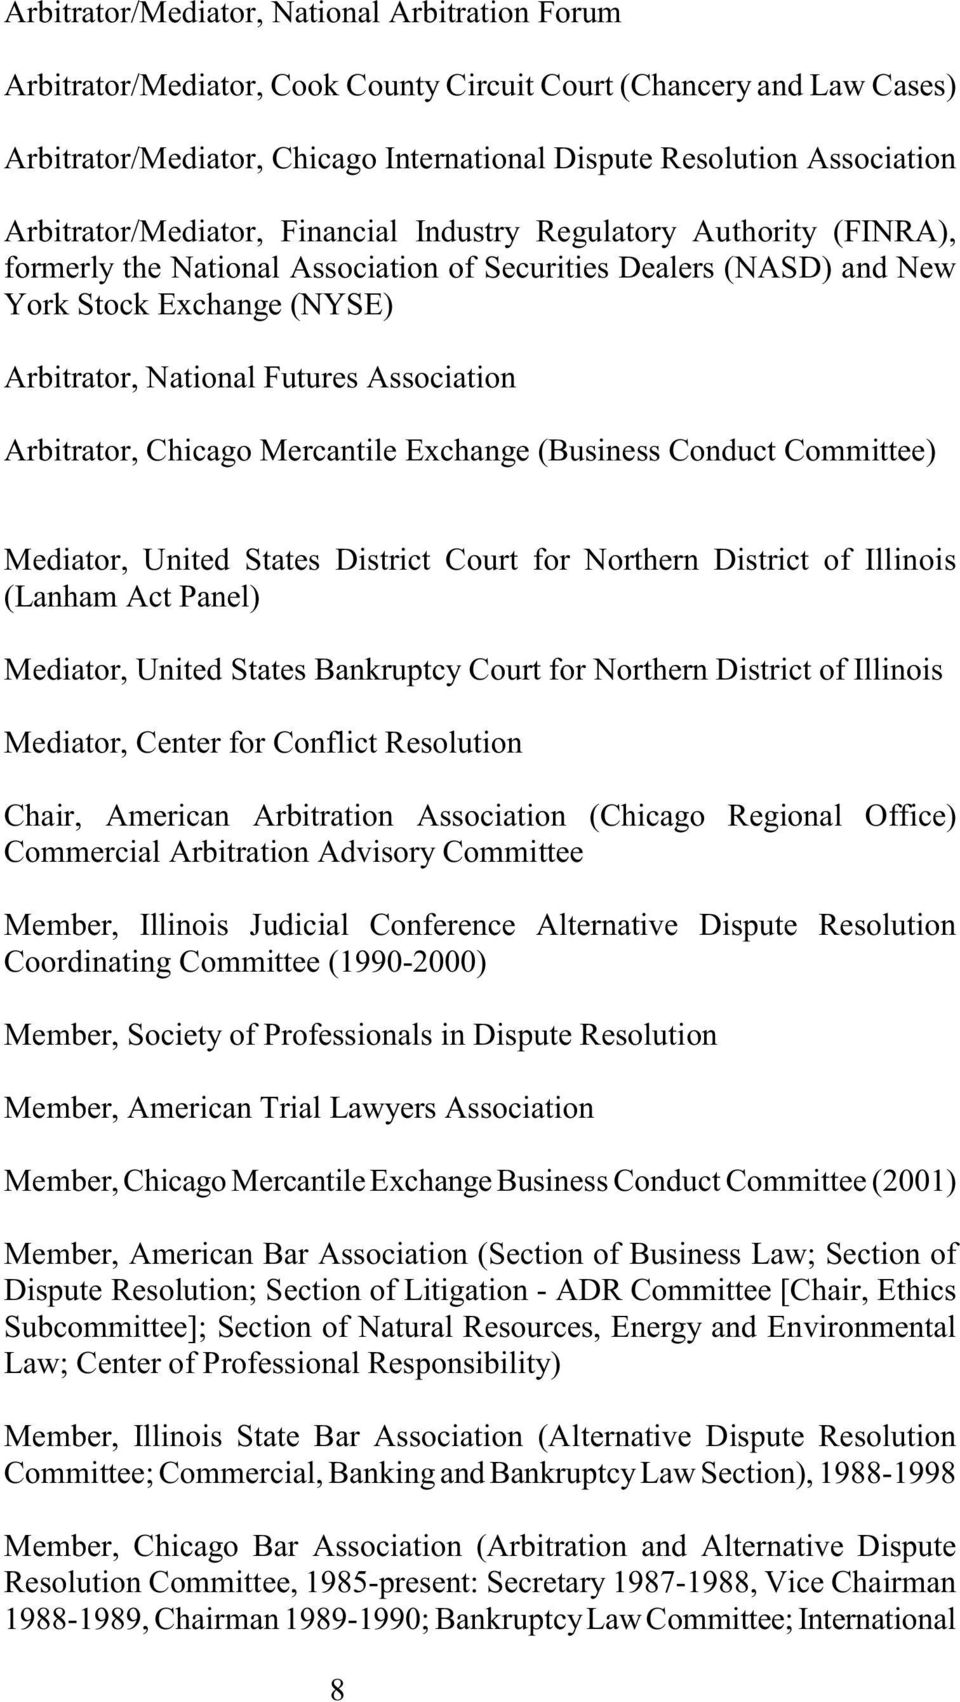 Association Arbitrator, Chicago Mercantile Exchange (Business Conduct Committee) Mediator, United States District Court for Northern District of Illinois (Lanham Act Panel) Mediator, United States